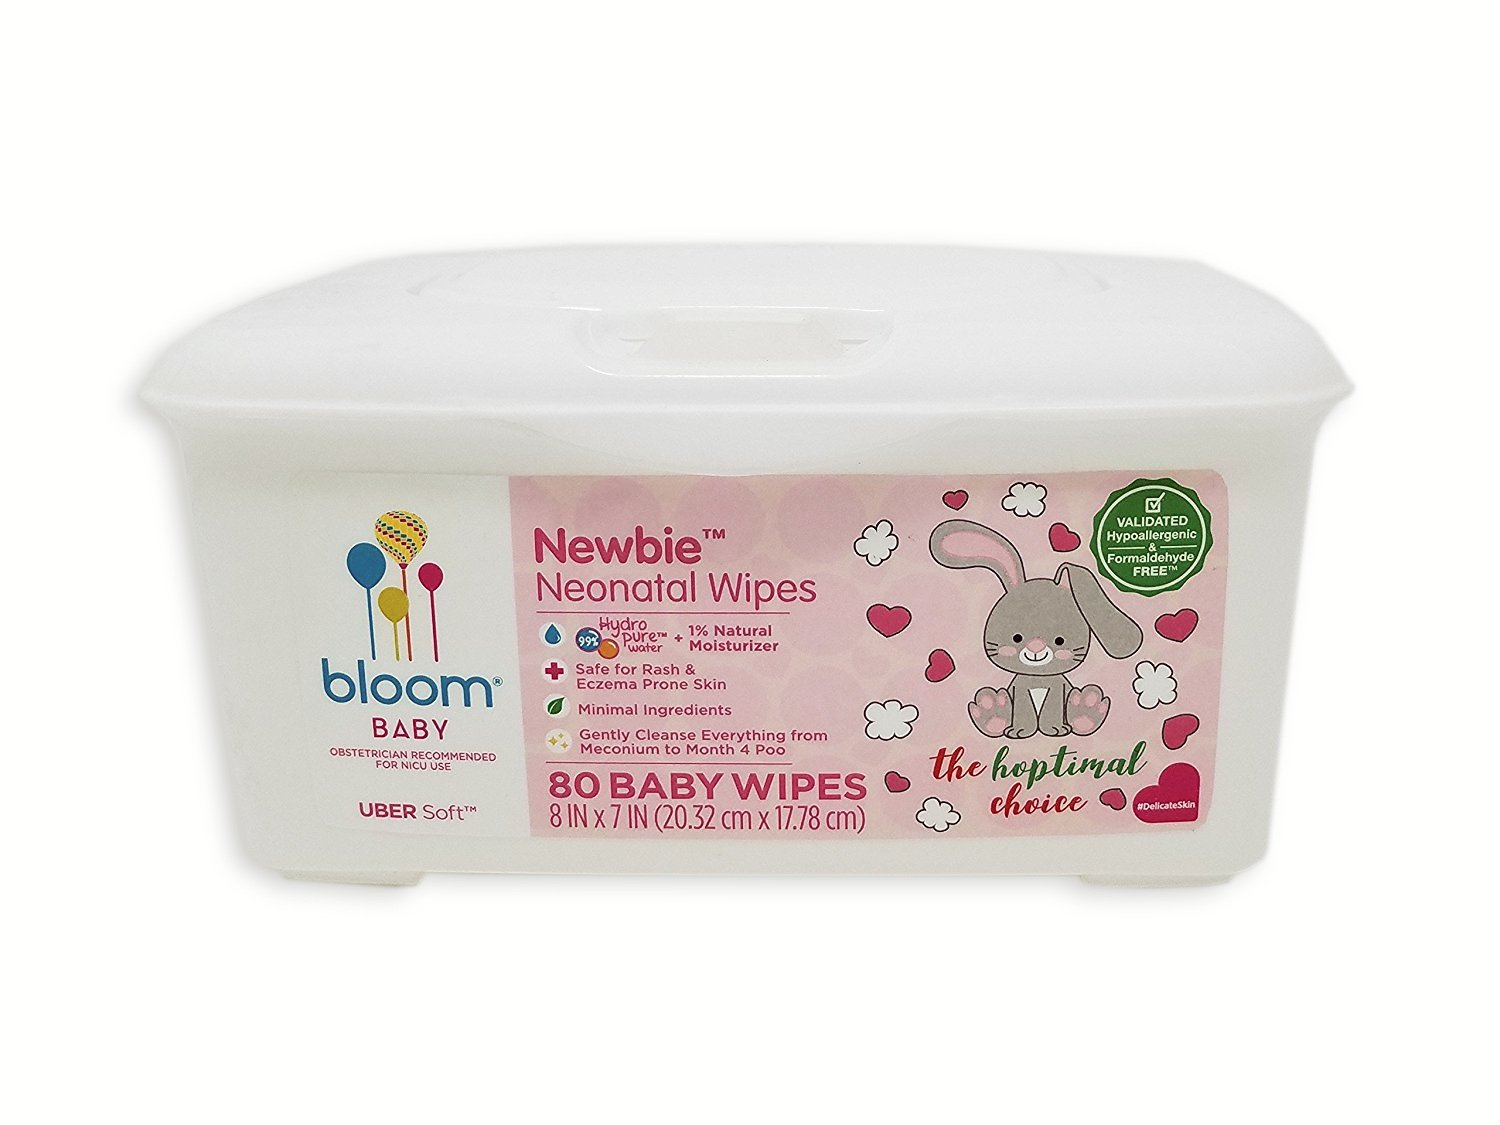 bloom BABY Sun Dry Baby Wipes Tub